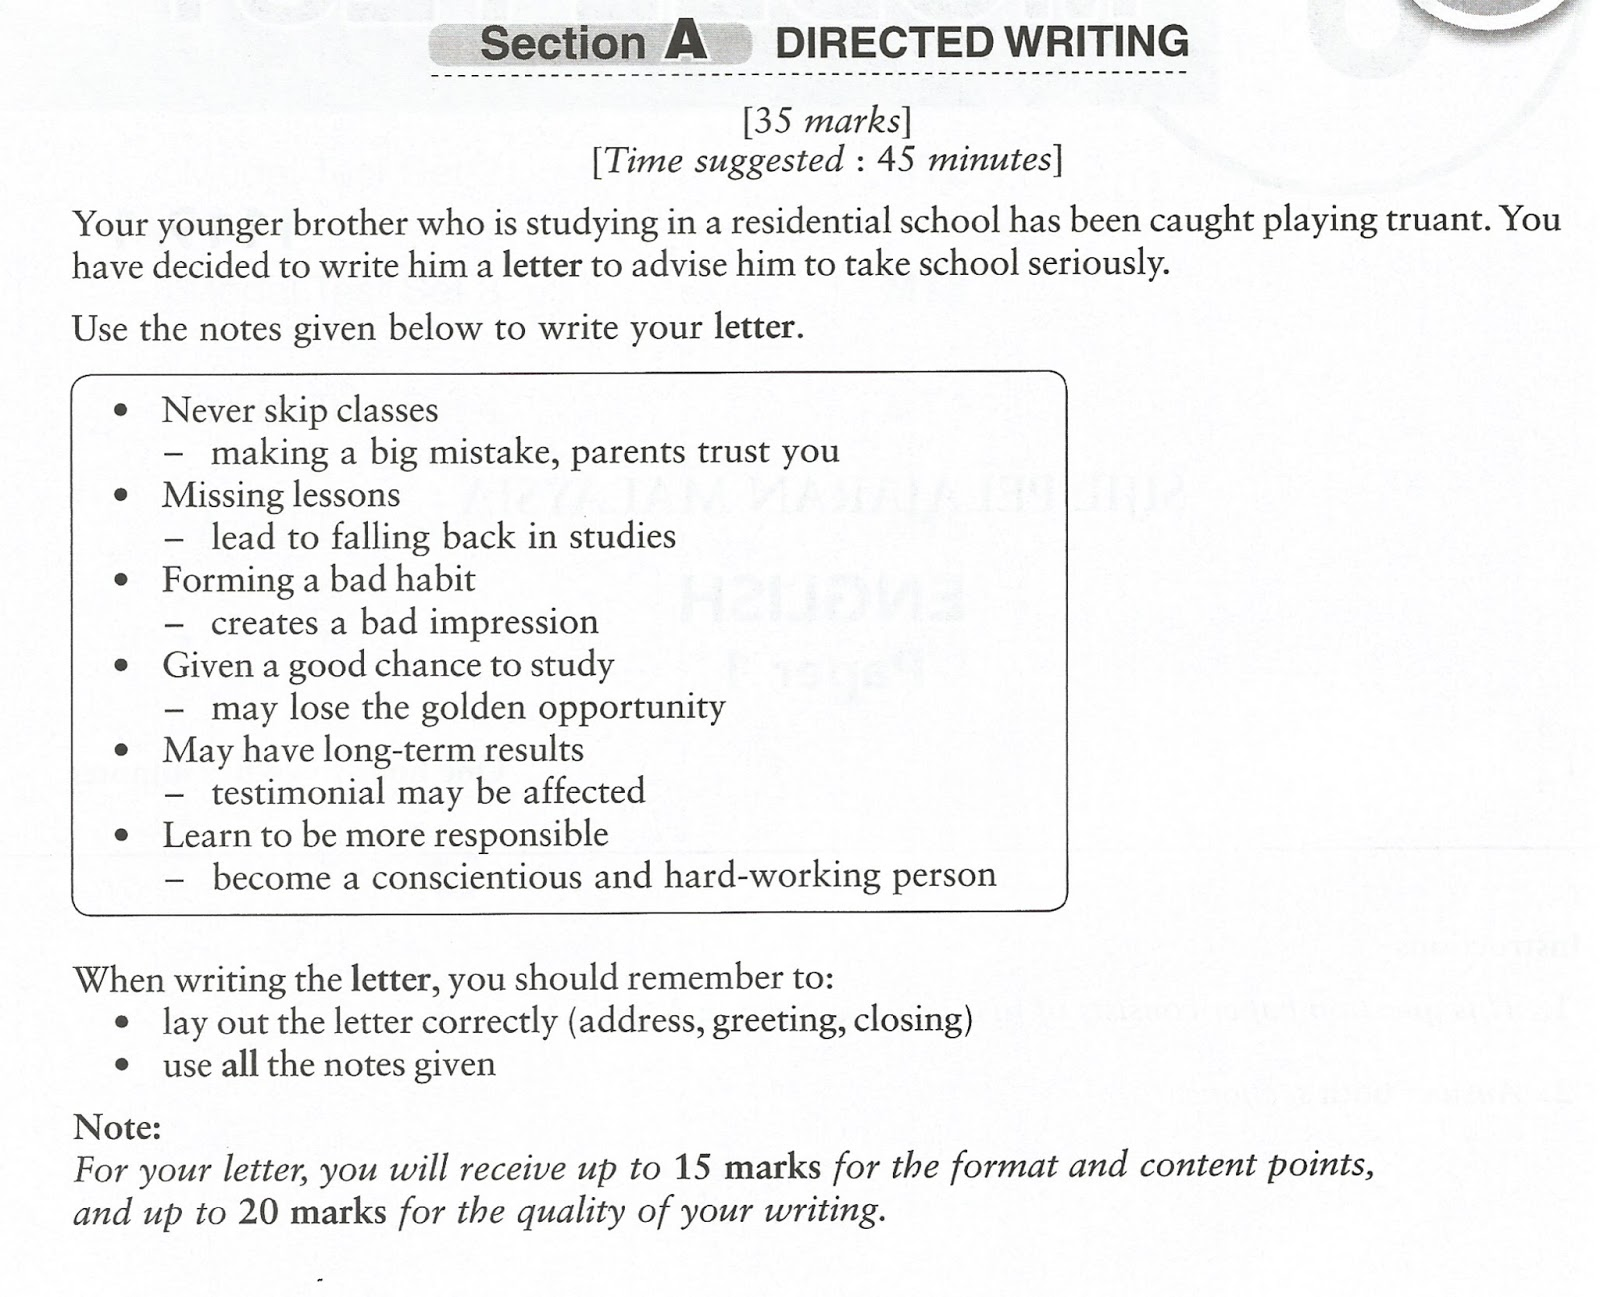 spm english essay informal letter Example of informal letter for student spm spm essay directed writing year 2011/ 2012 informal letters writing and informal letter sub:english.